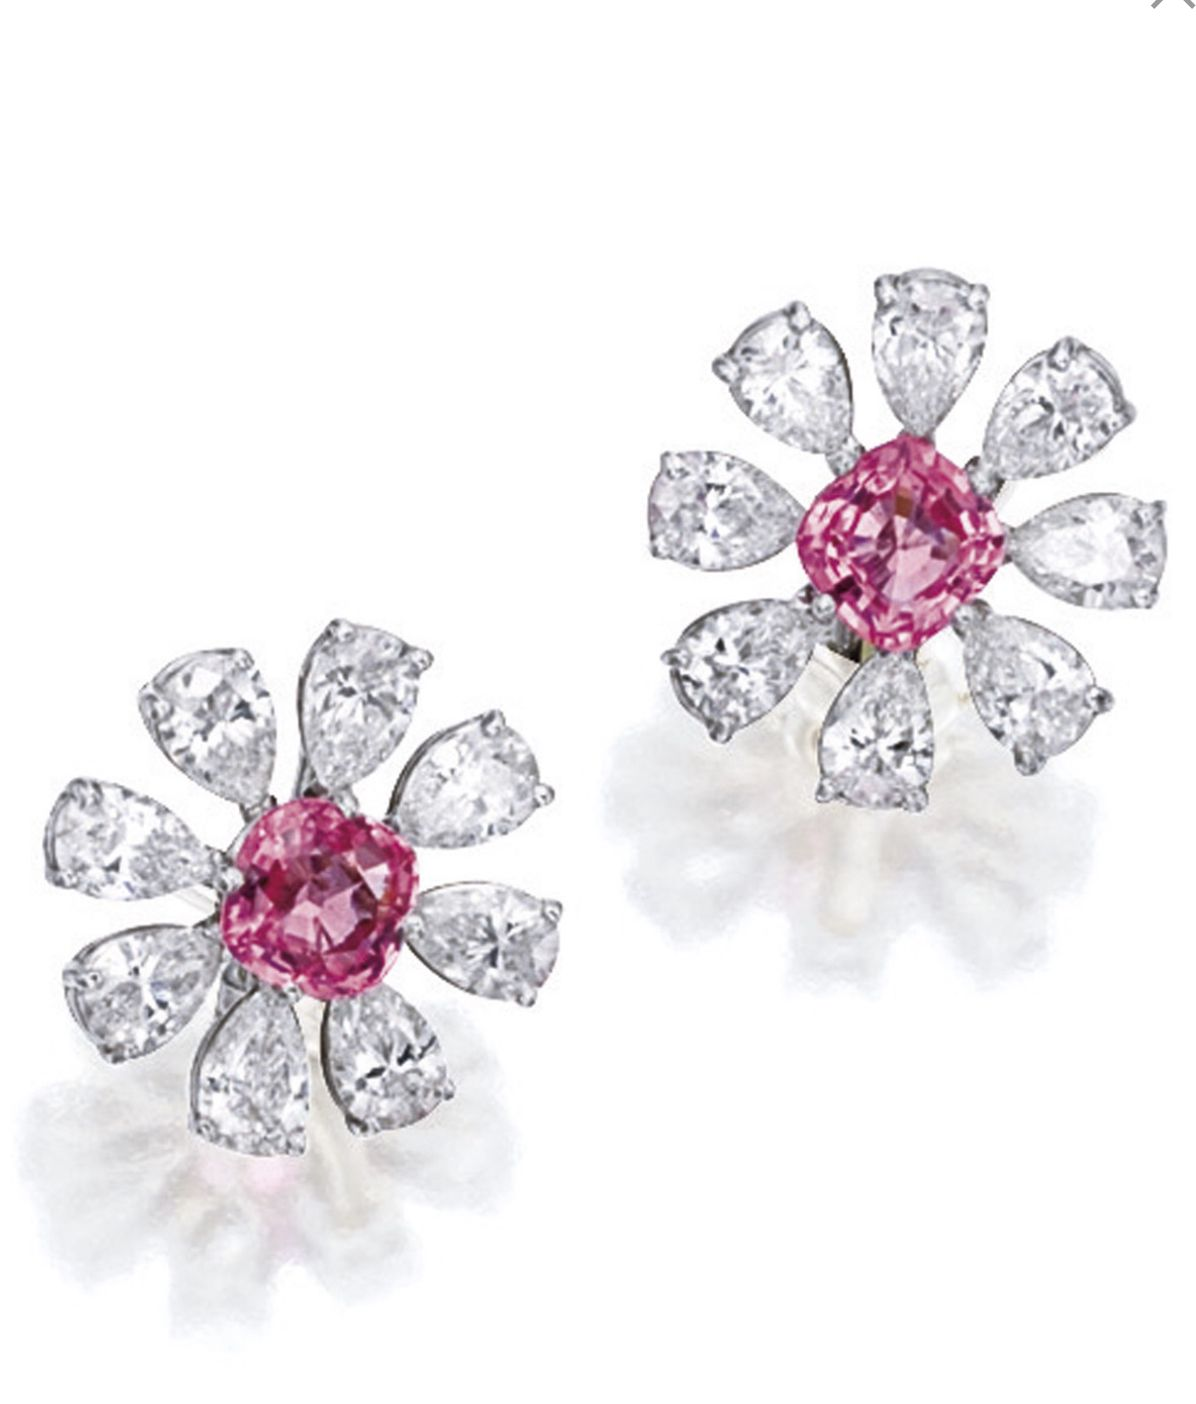 million usd jewels padparadscha magnificent fine s kong lot hong total and of sotheby october sapphire diamond registers a earrings sale ring autumn sothebys jadeite